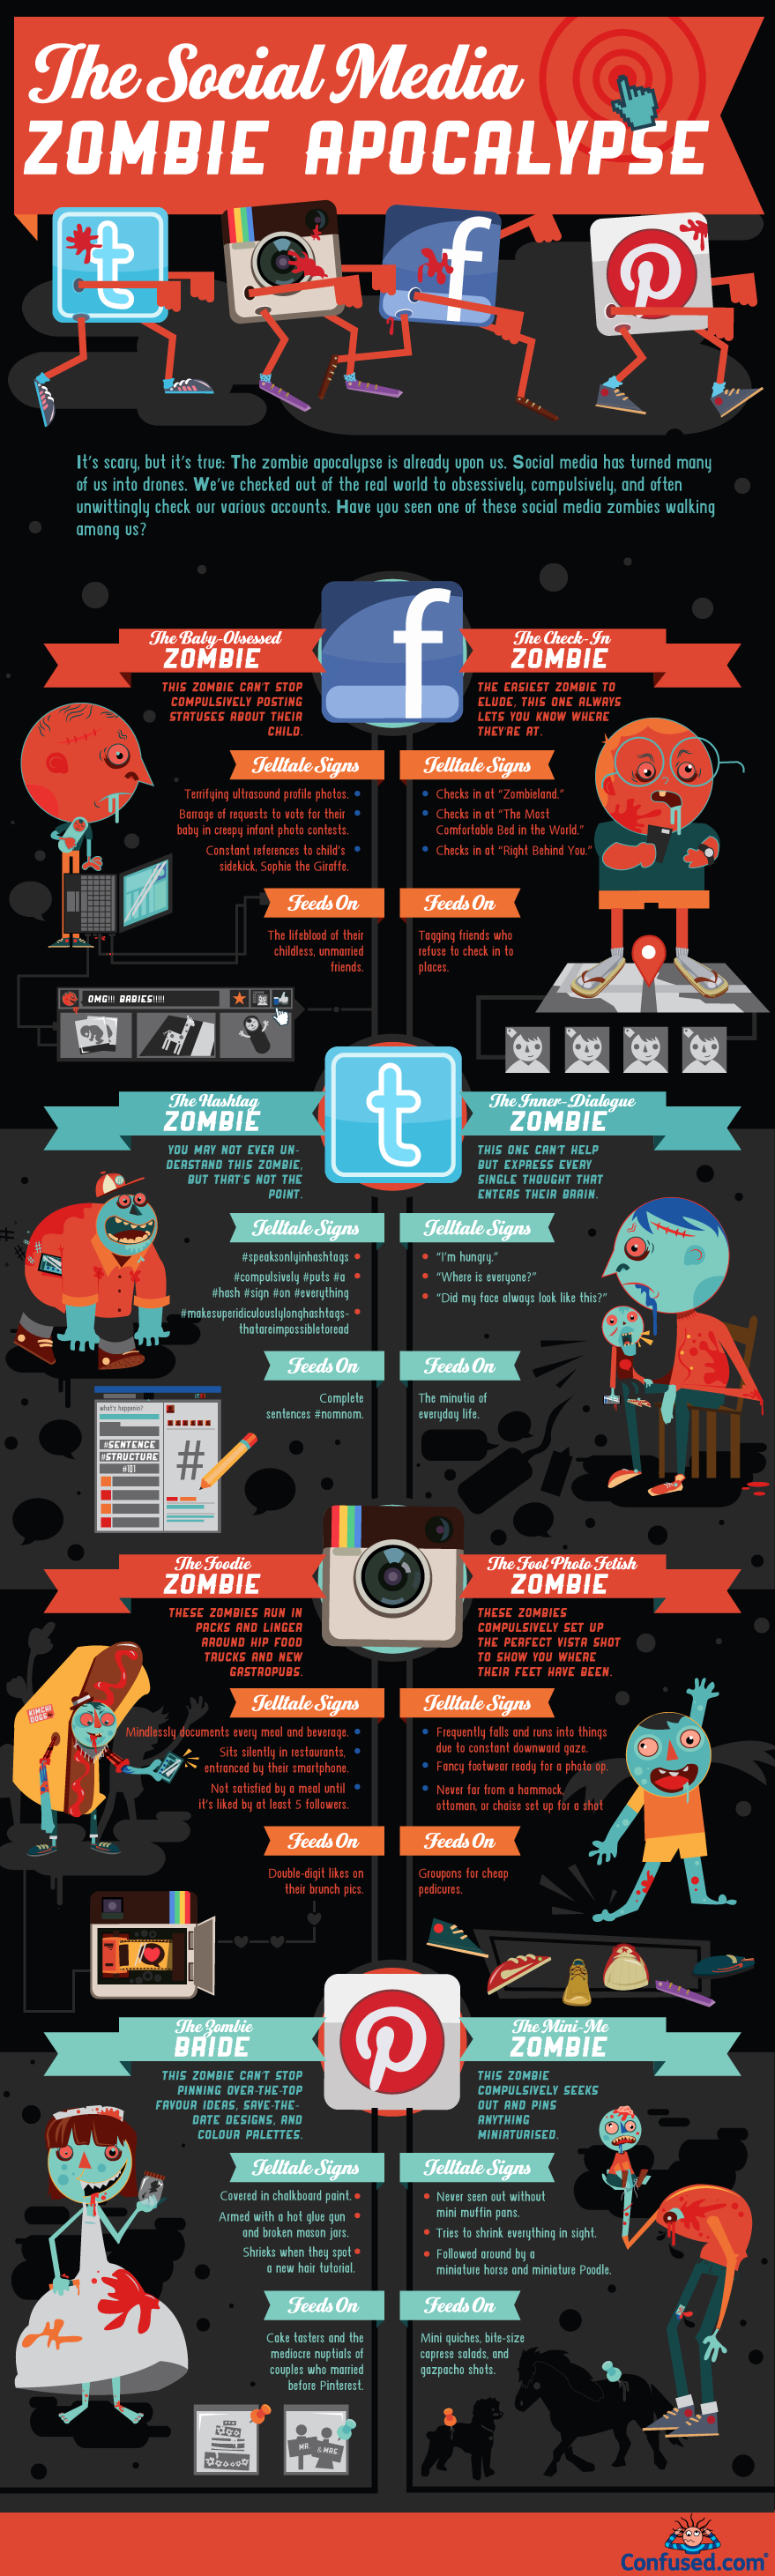 8 types of social media zombies